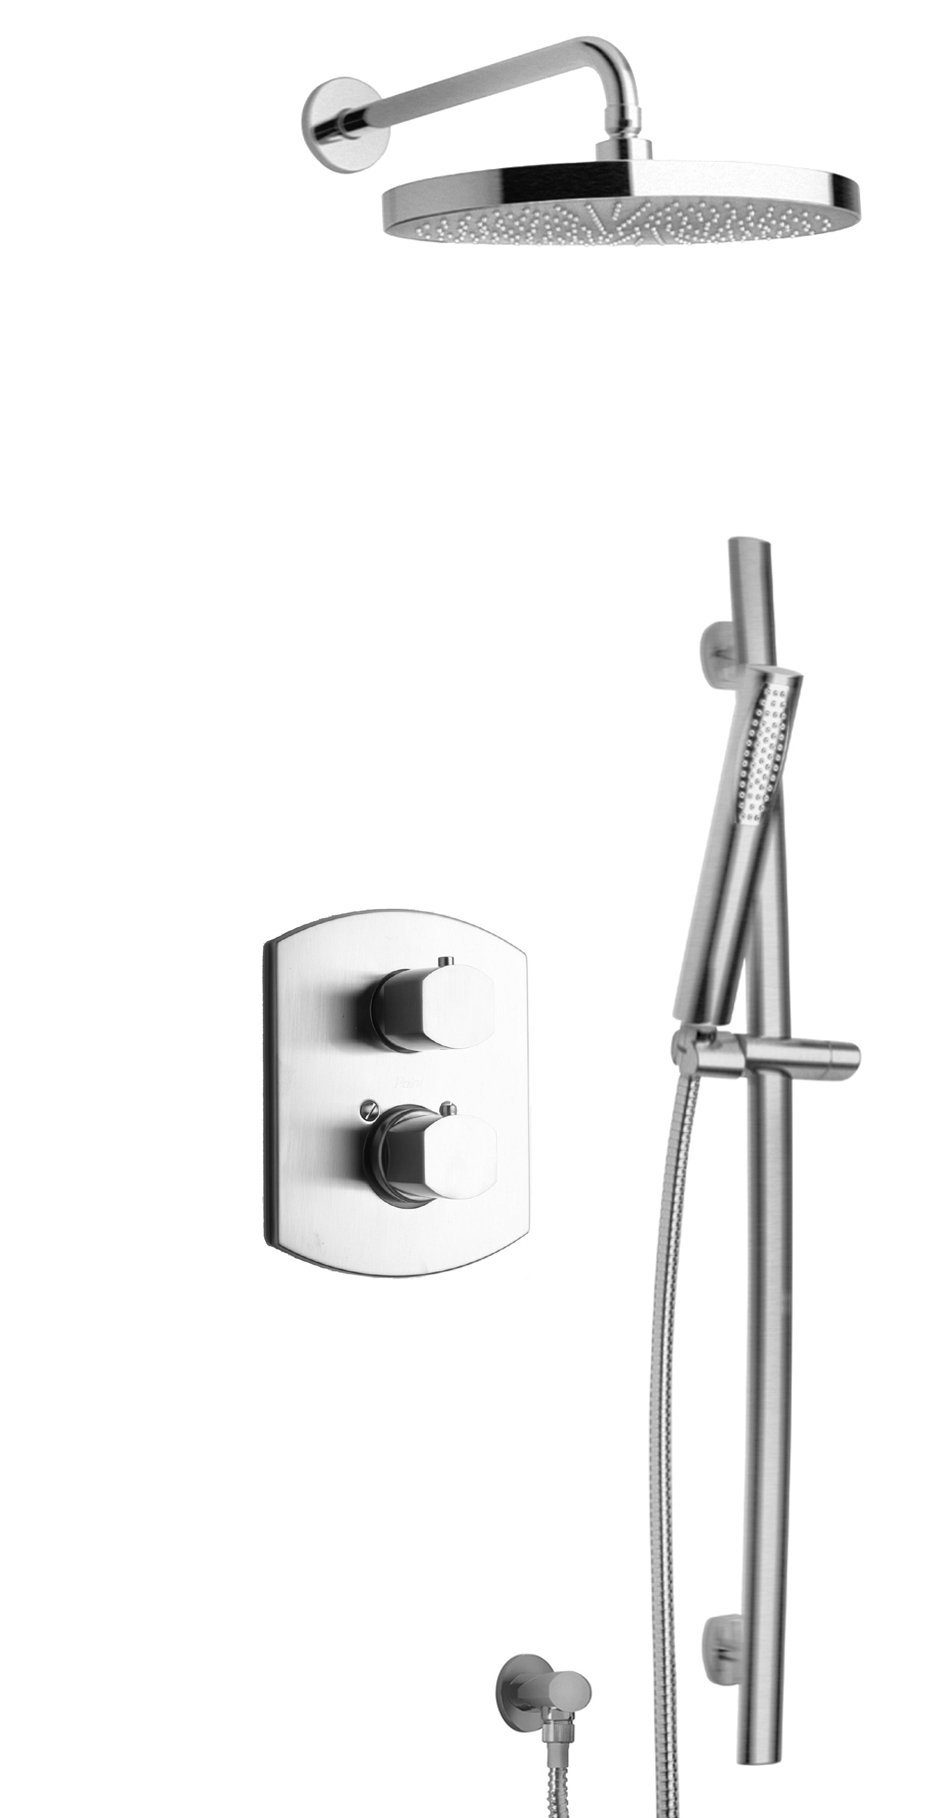 Thermostatic Shower With 2-Way Diverter Volume Control and Slide Bar in Chrome Finish